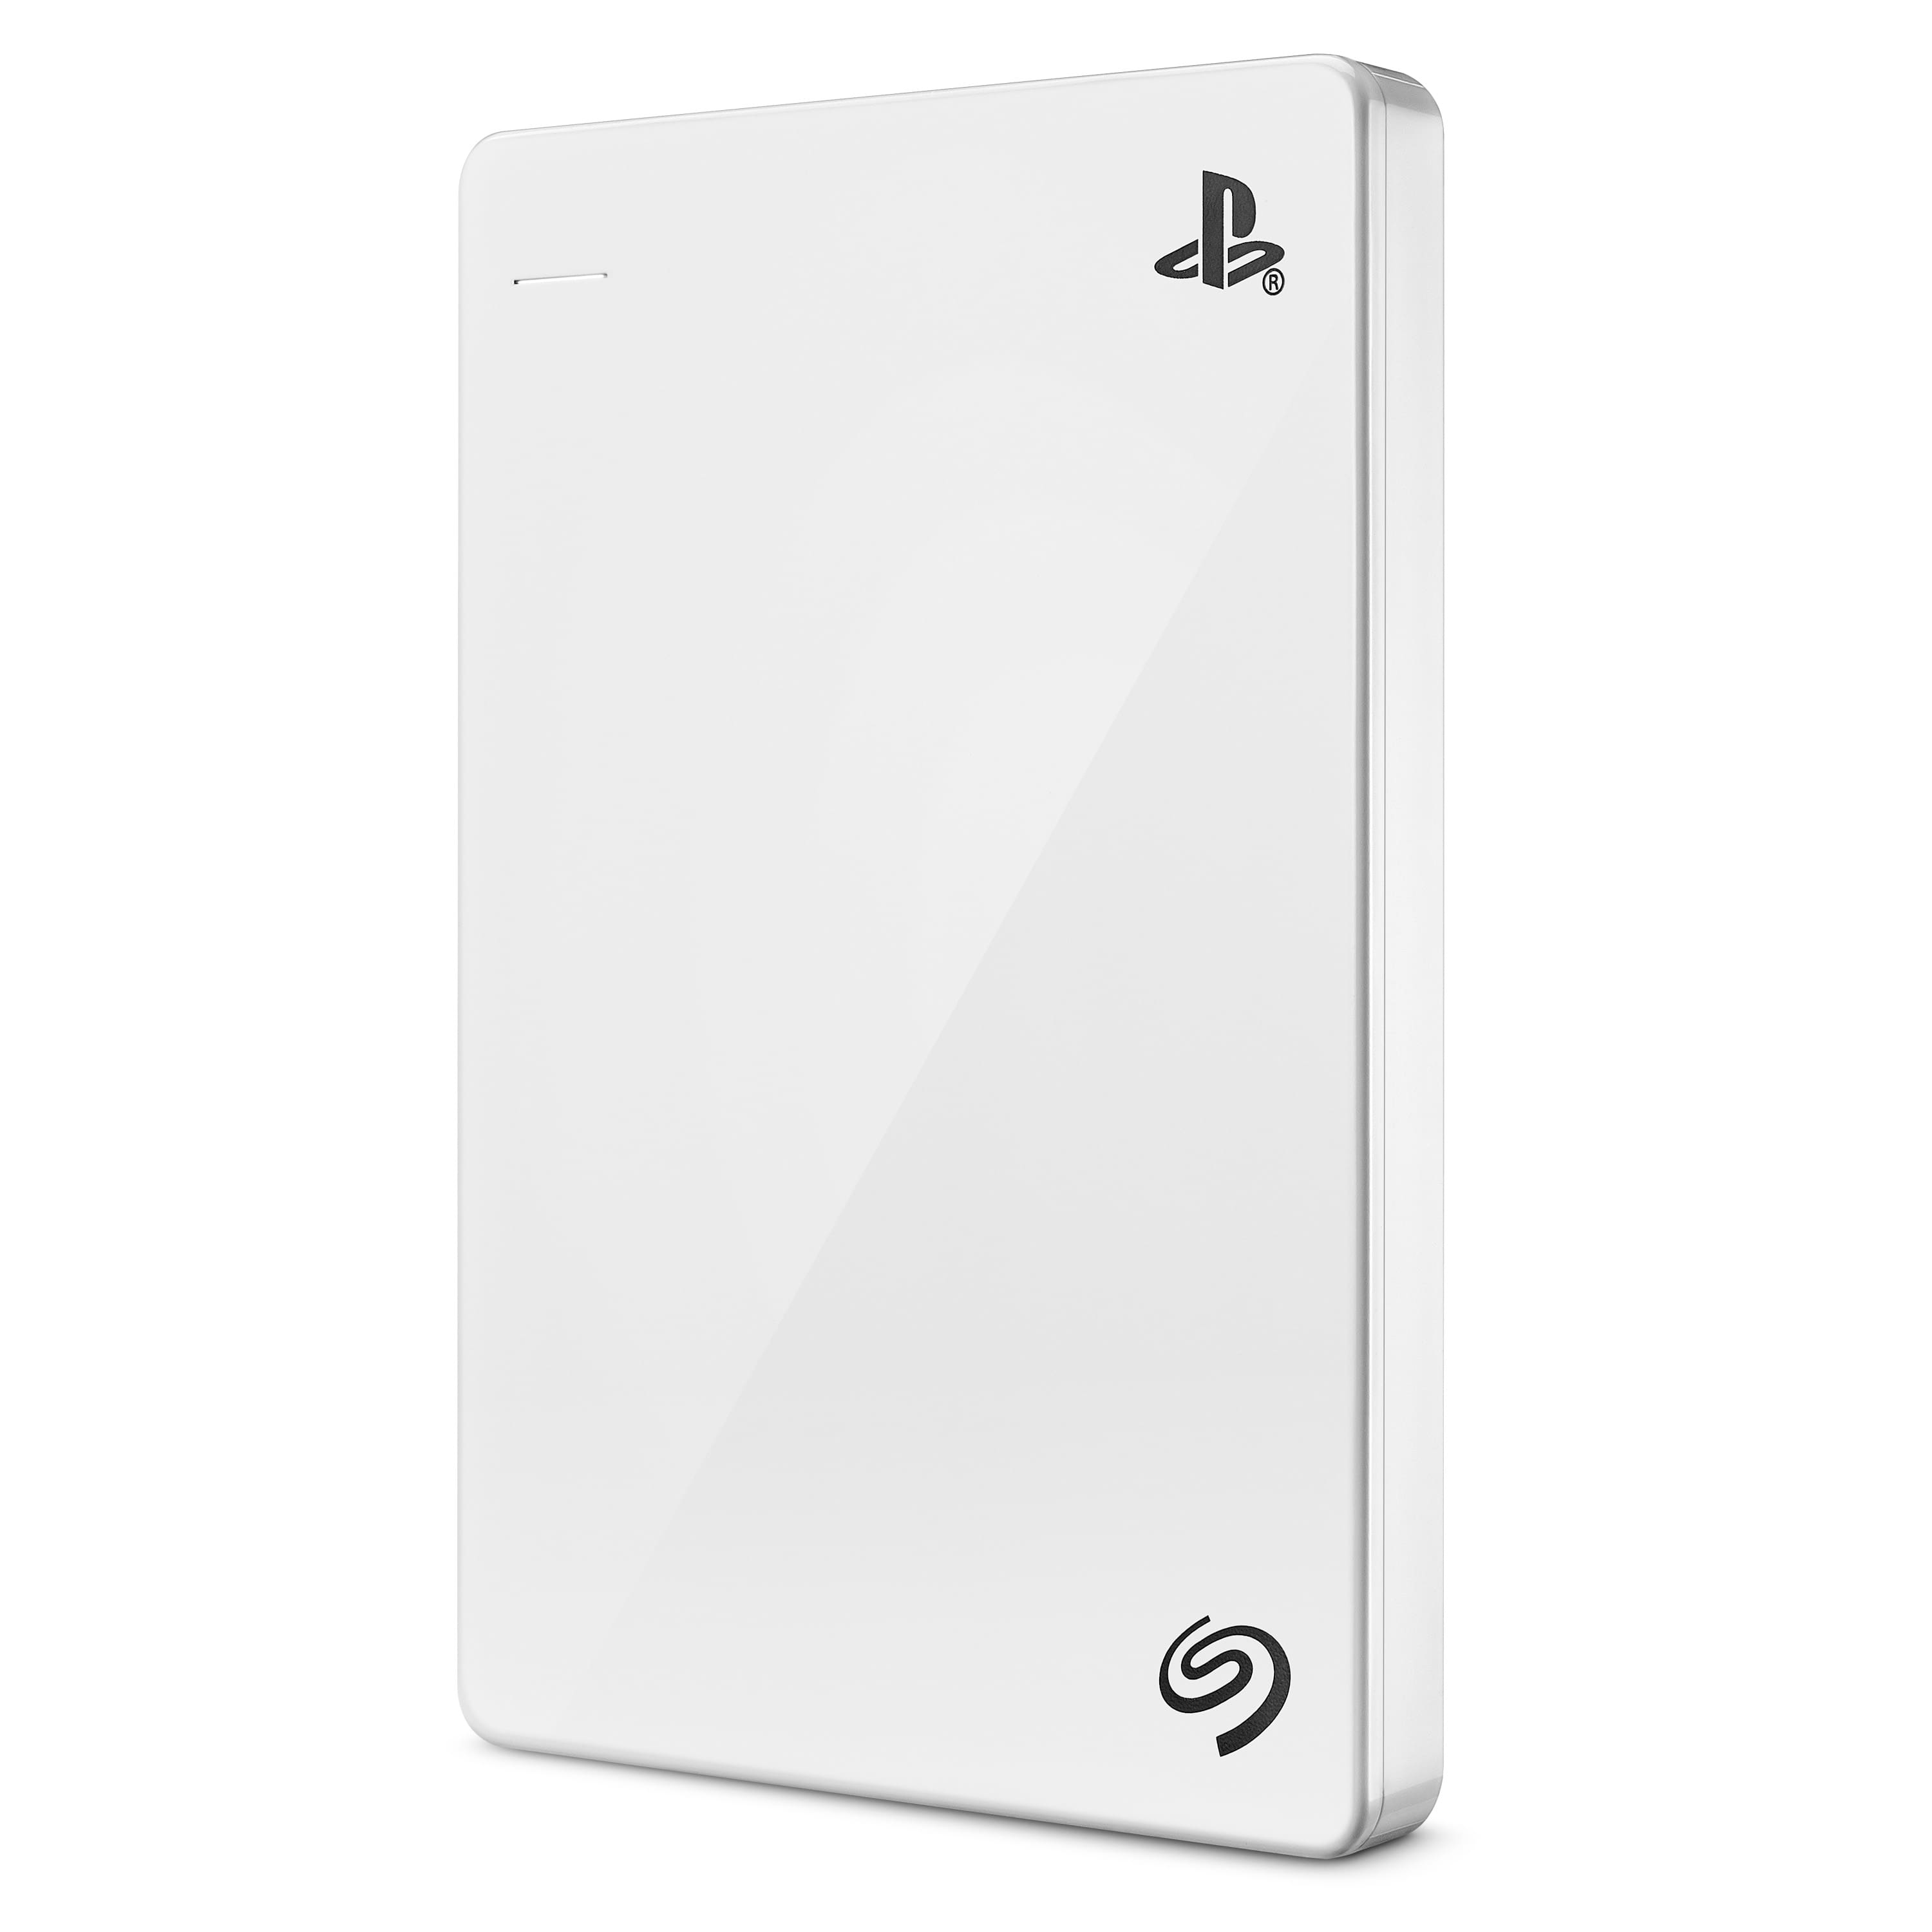 Seagate 2TB Game Drive for PlayStation 4 PS4 Portable External Hard Drive USB 3.0 (White) Officially Licensed $74.97